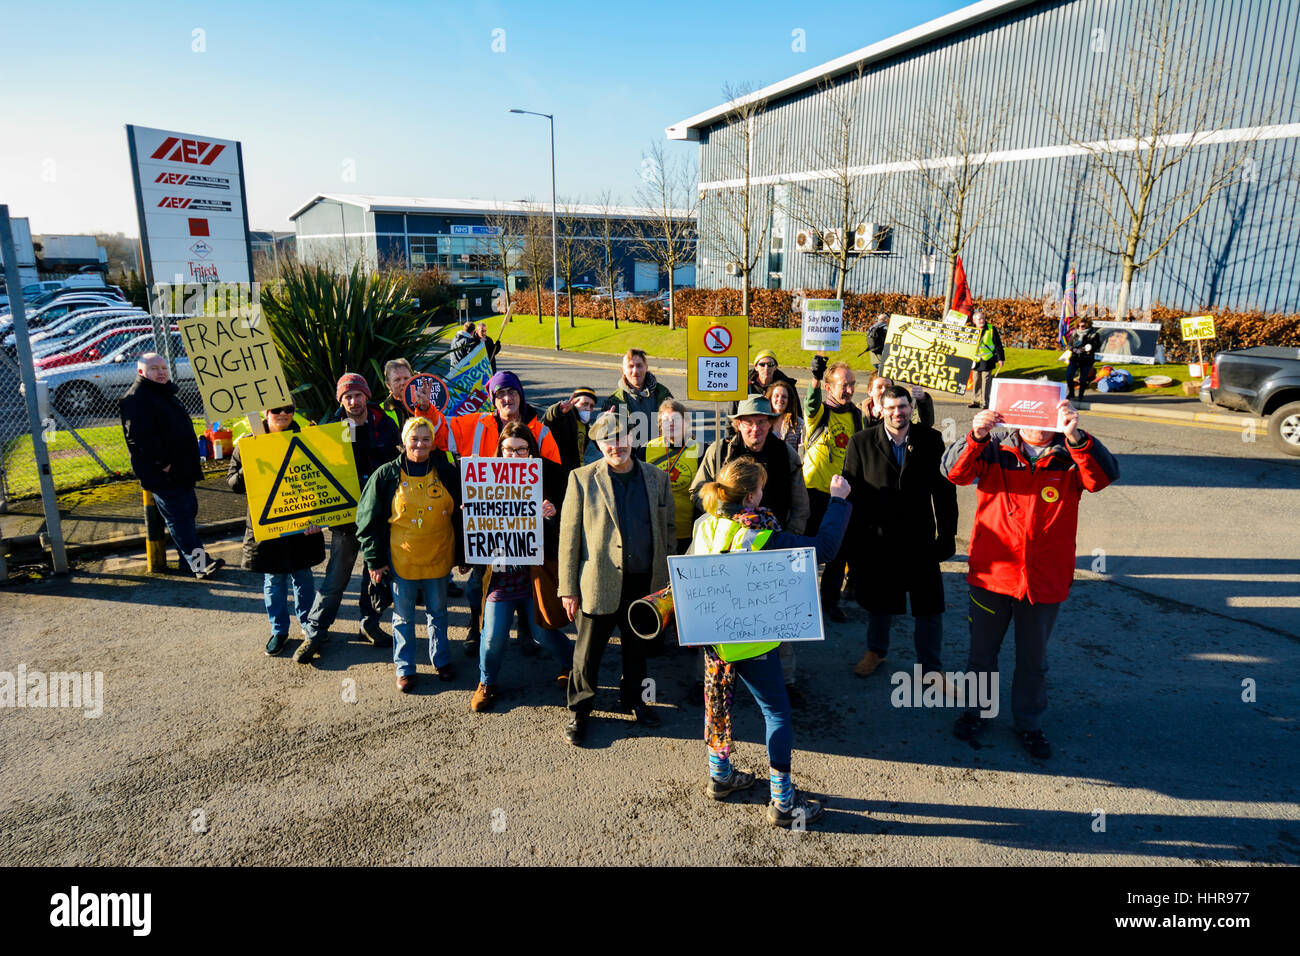 Bolton Lancashire, UK. 20th January 2017: A small group of protesters blocked the entrance to A E Yates business - Stock Image